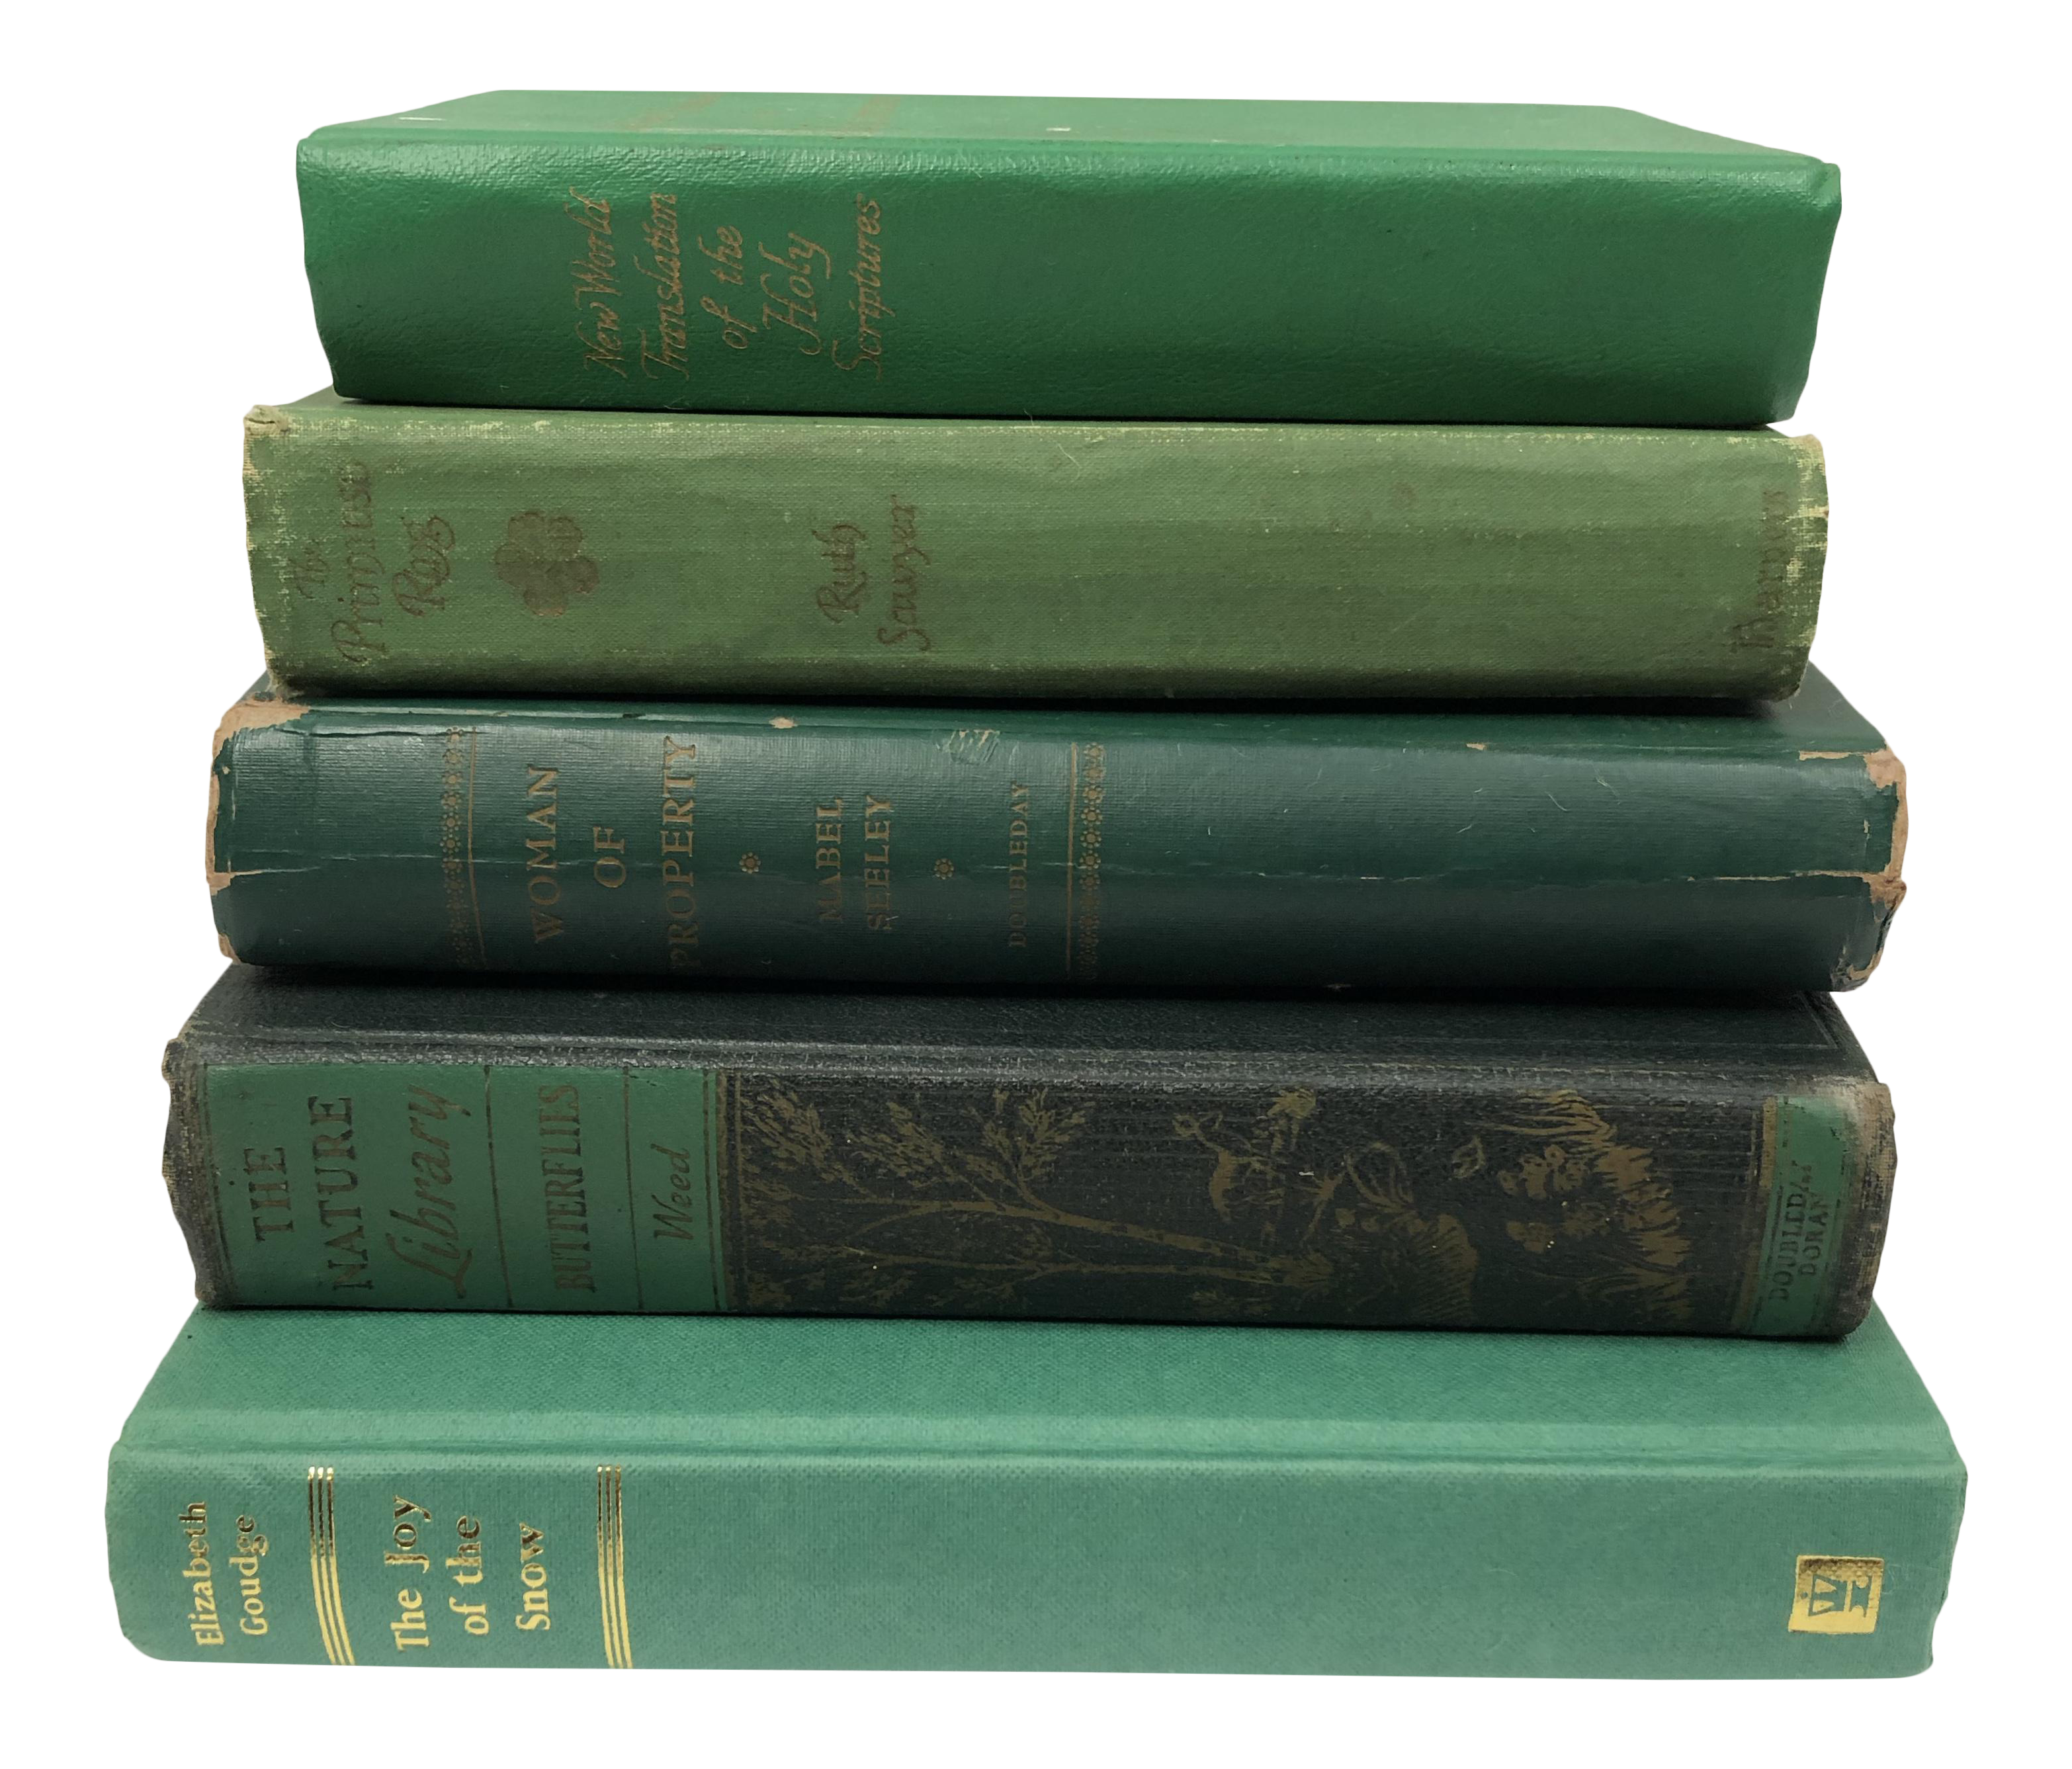 Vintage Green Book Stack Set Of 5 On Chairish Com Vintage Book Decor Green Aesthetic Green Books